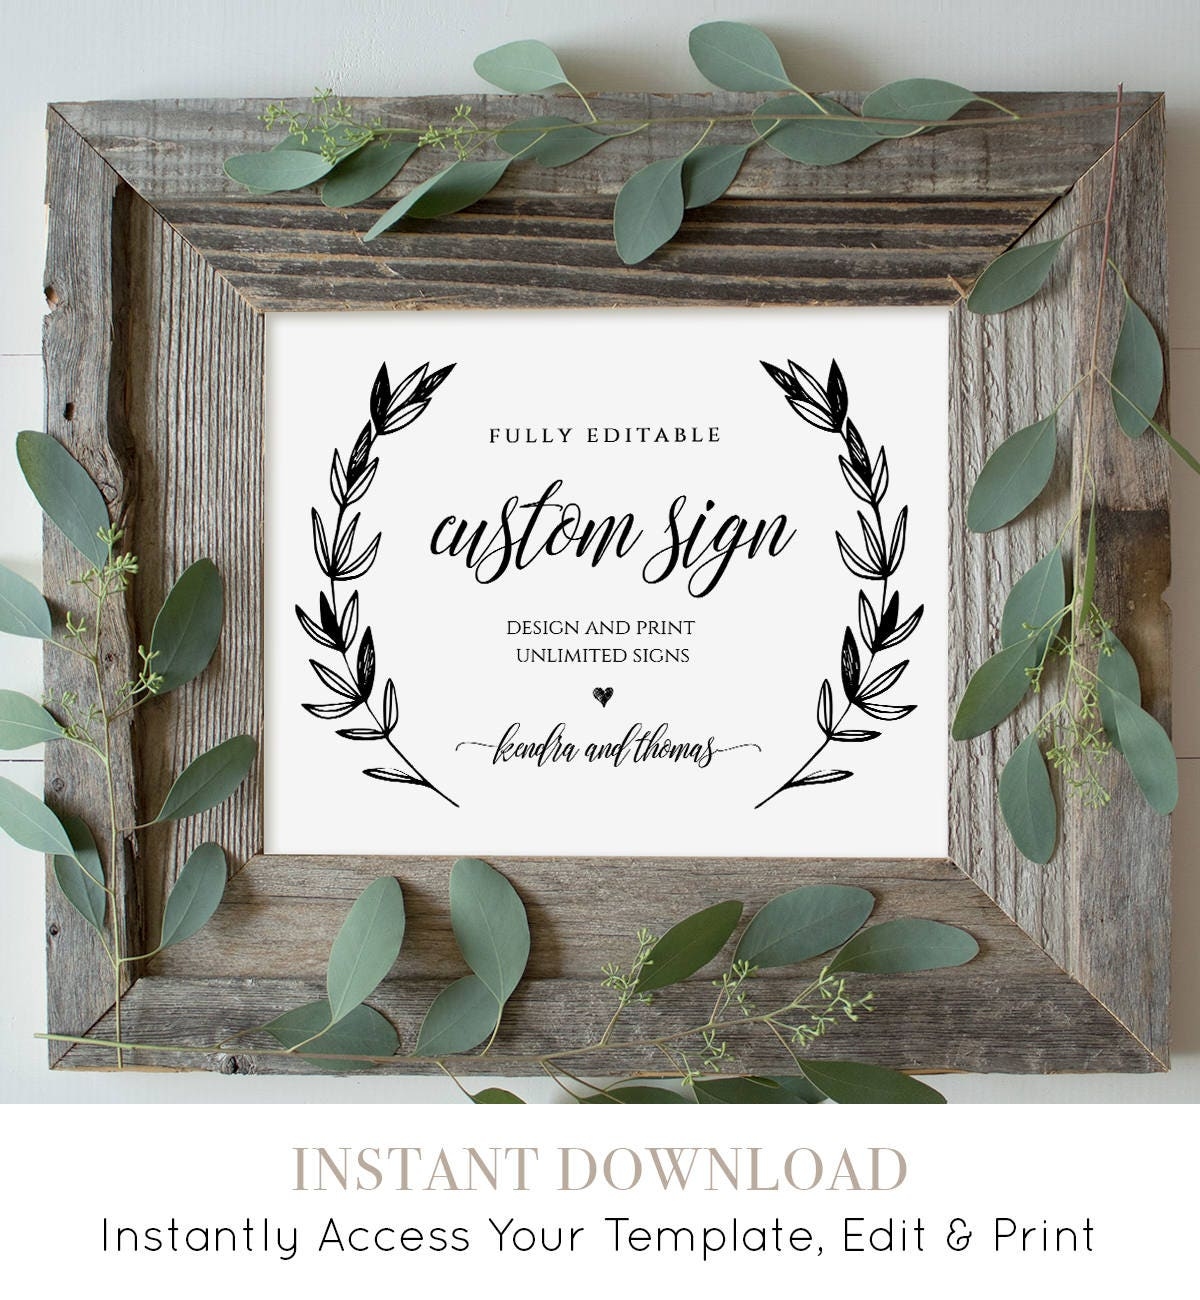 It's just a photo of Unforgettable Free Printable Custom Signs